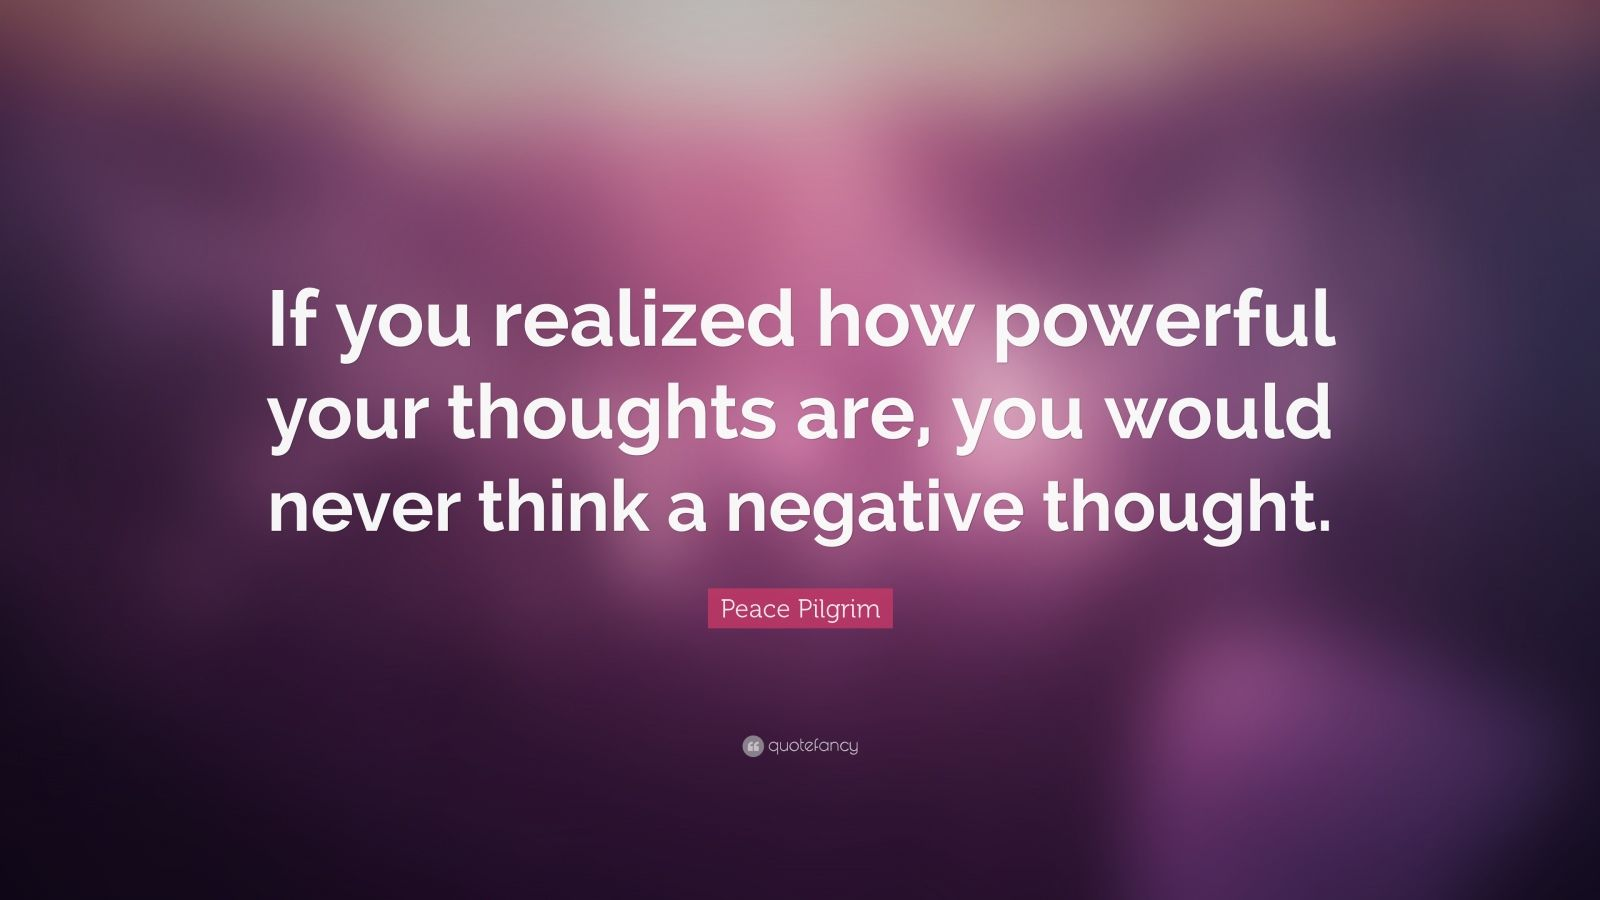 Thoughts Quotes Wallpaper Peace Pilgrim Quote If You Realized How Powerful Your